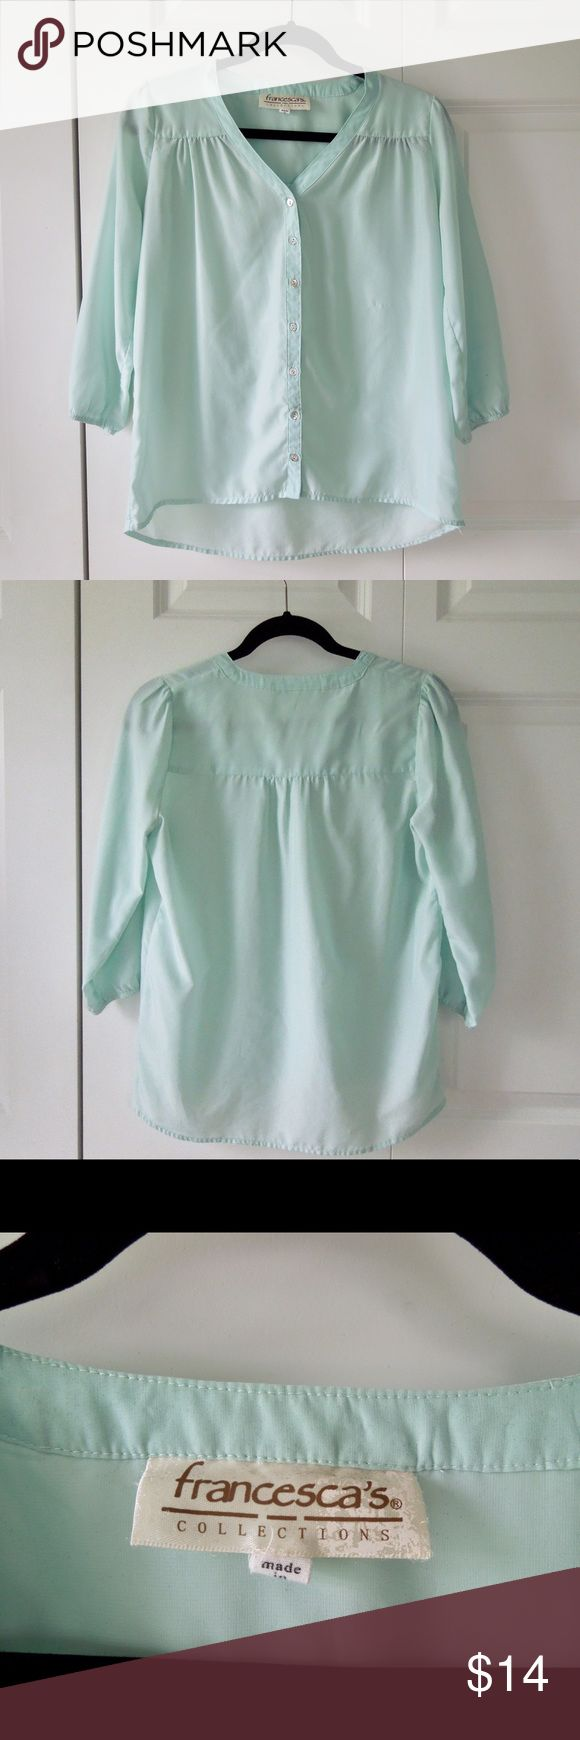 Mint Button Down Cute button down in a beautiful mint color. Lightweight and good for a preppy outfit. Francesca's Collections Tops Button Down Shirts